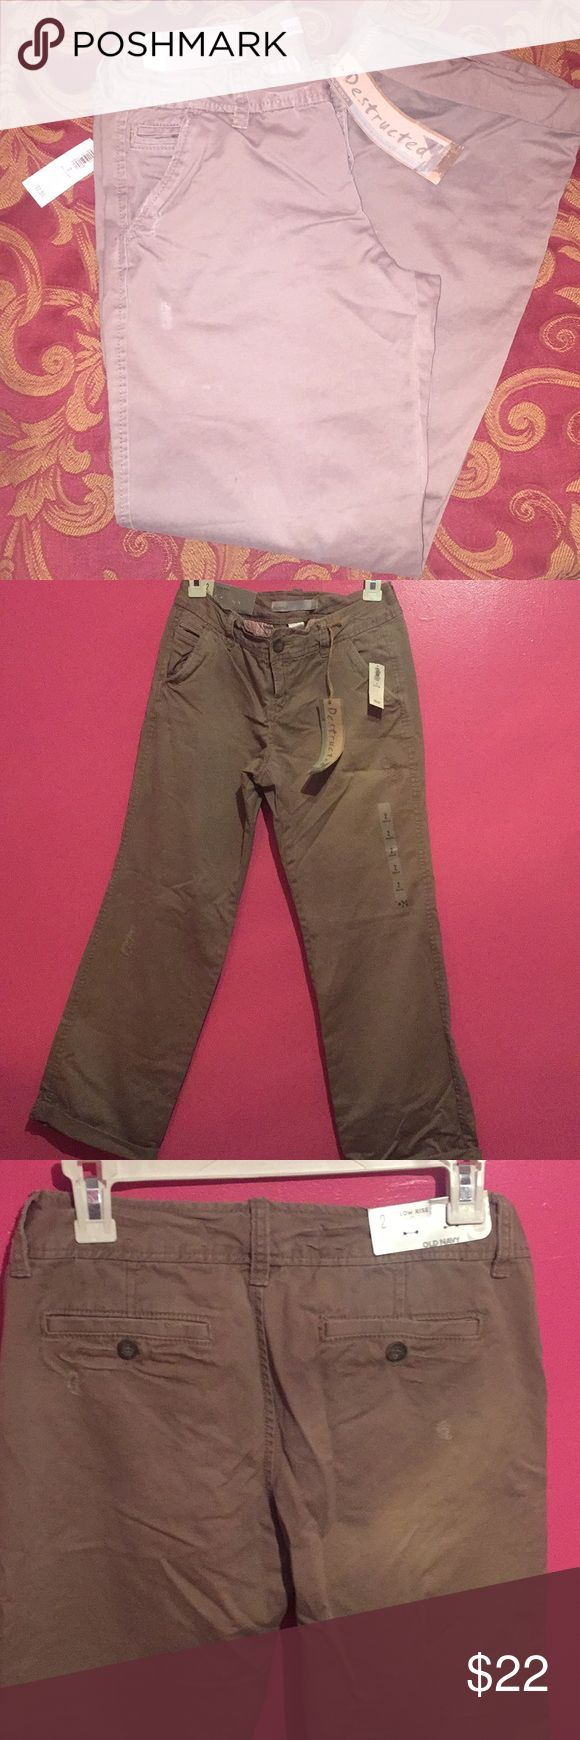 Old Navy beige cargo pants Brand new cargo pants with tags Destructed pants Size 2 regular  Low rise Old Navy Pants Boot Cut & Flare